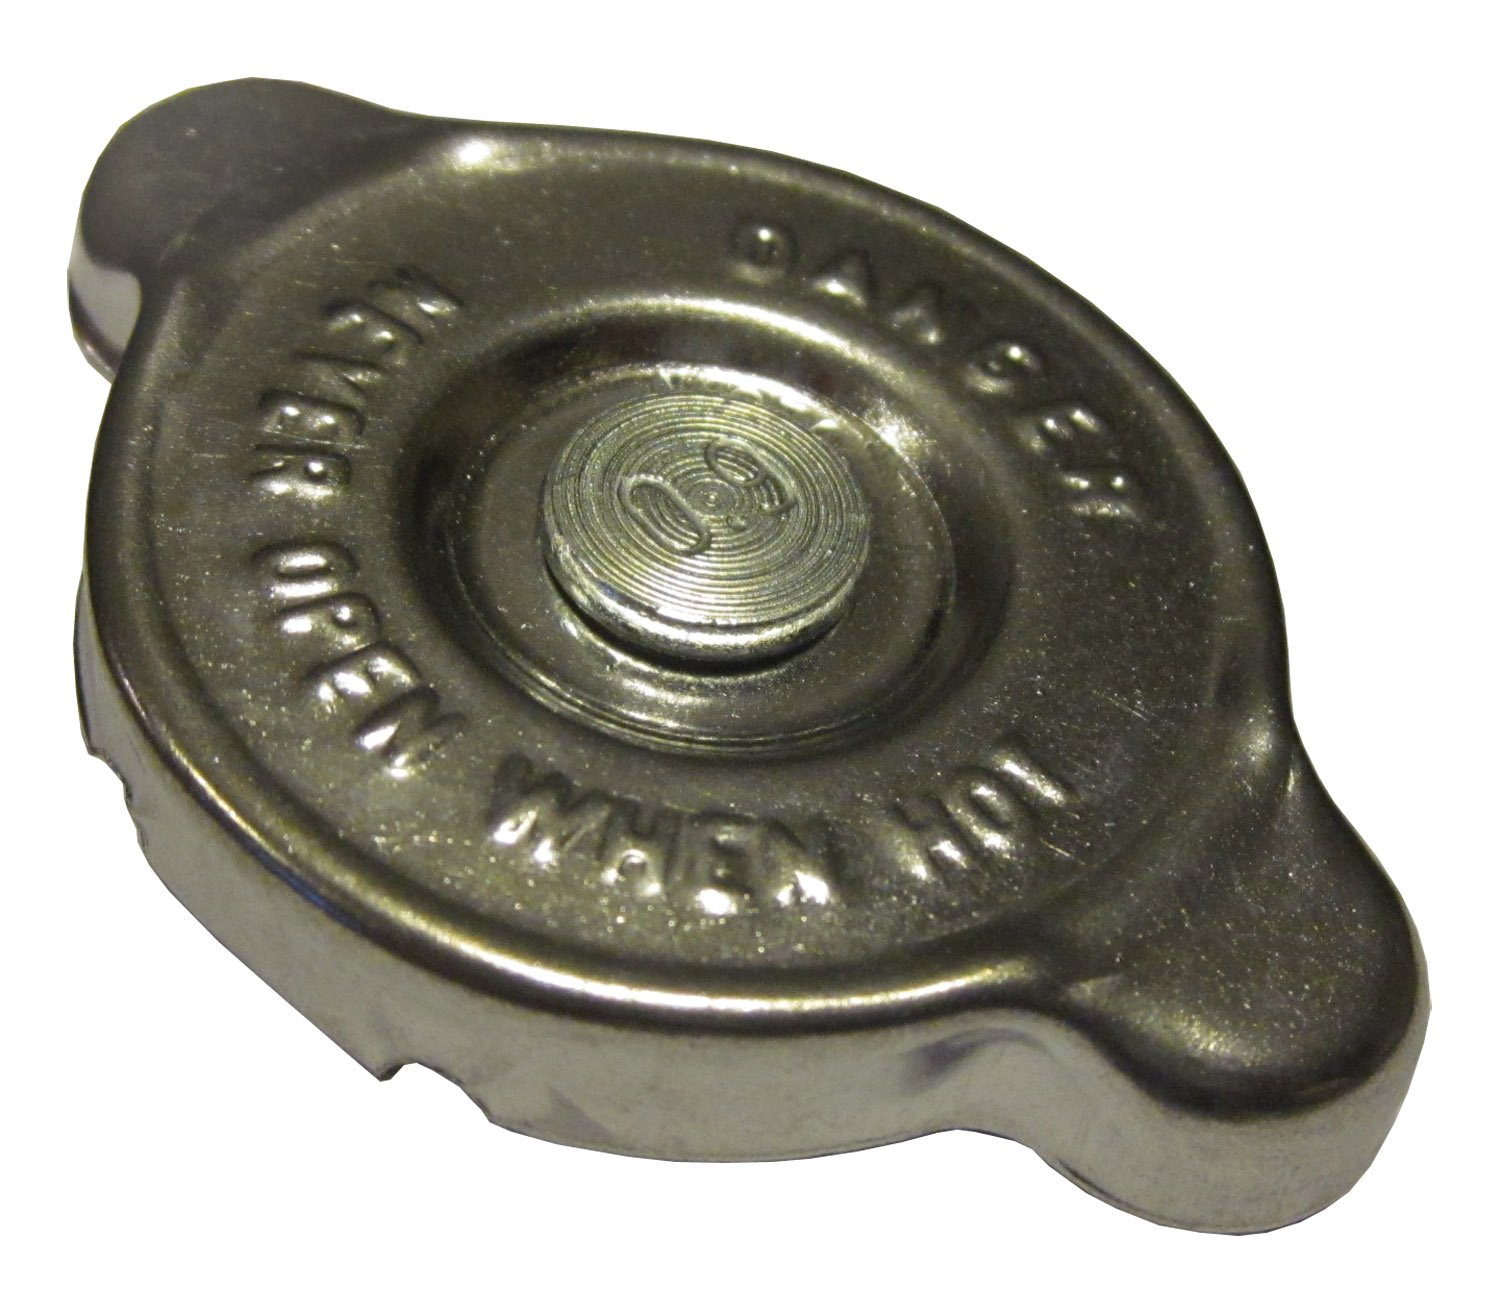 Polaris Ranger 400 500 570 700 800 UTV Radiator Cap (1999-17) 1240300 1240093 Quad Logic